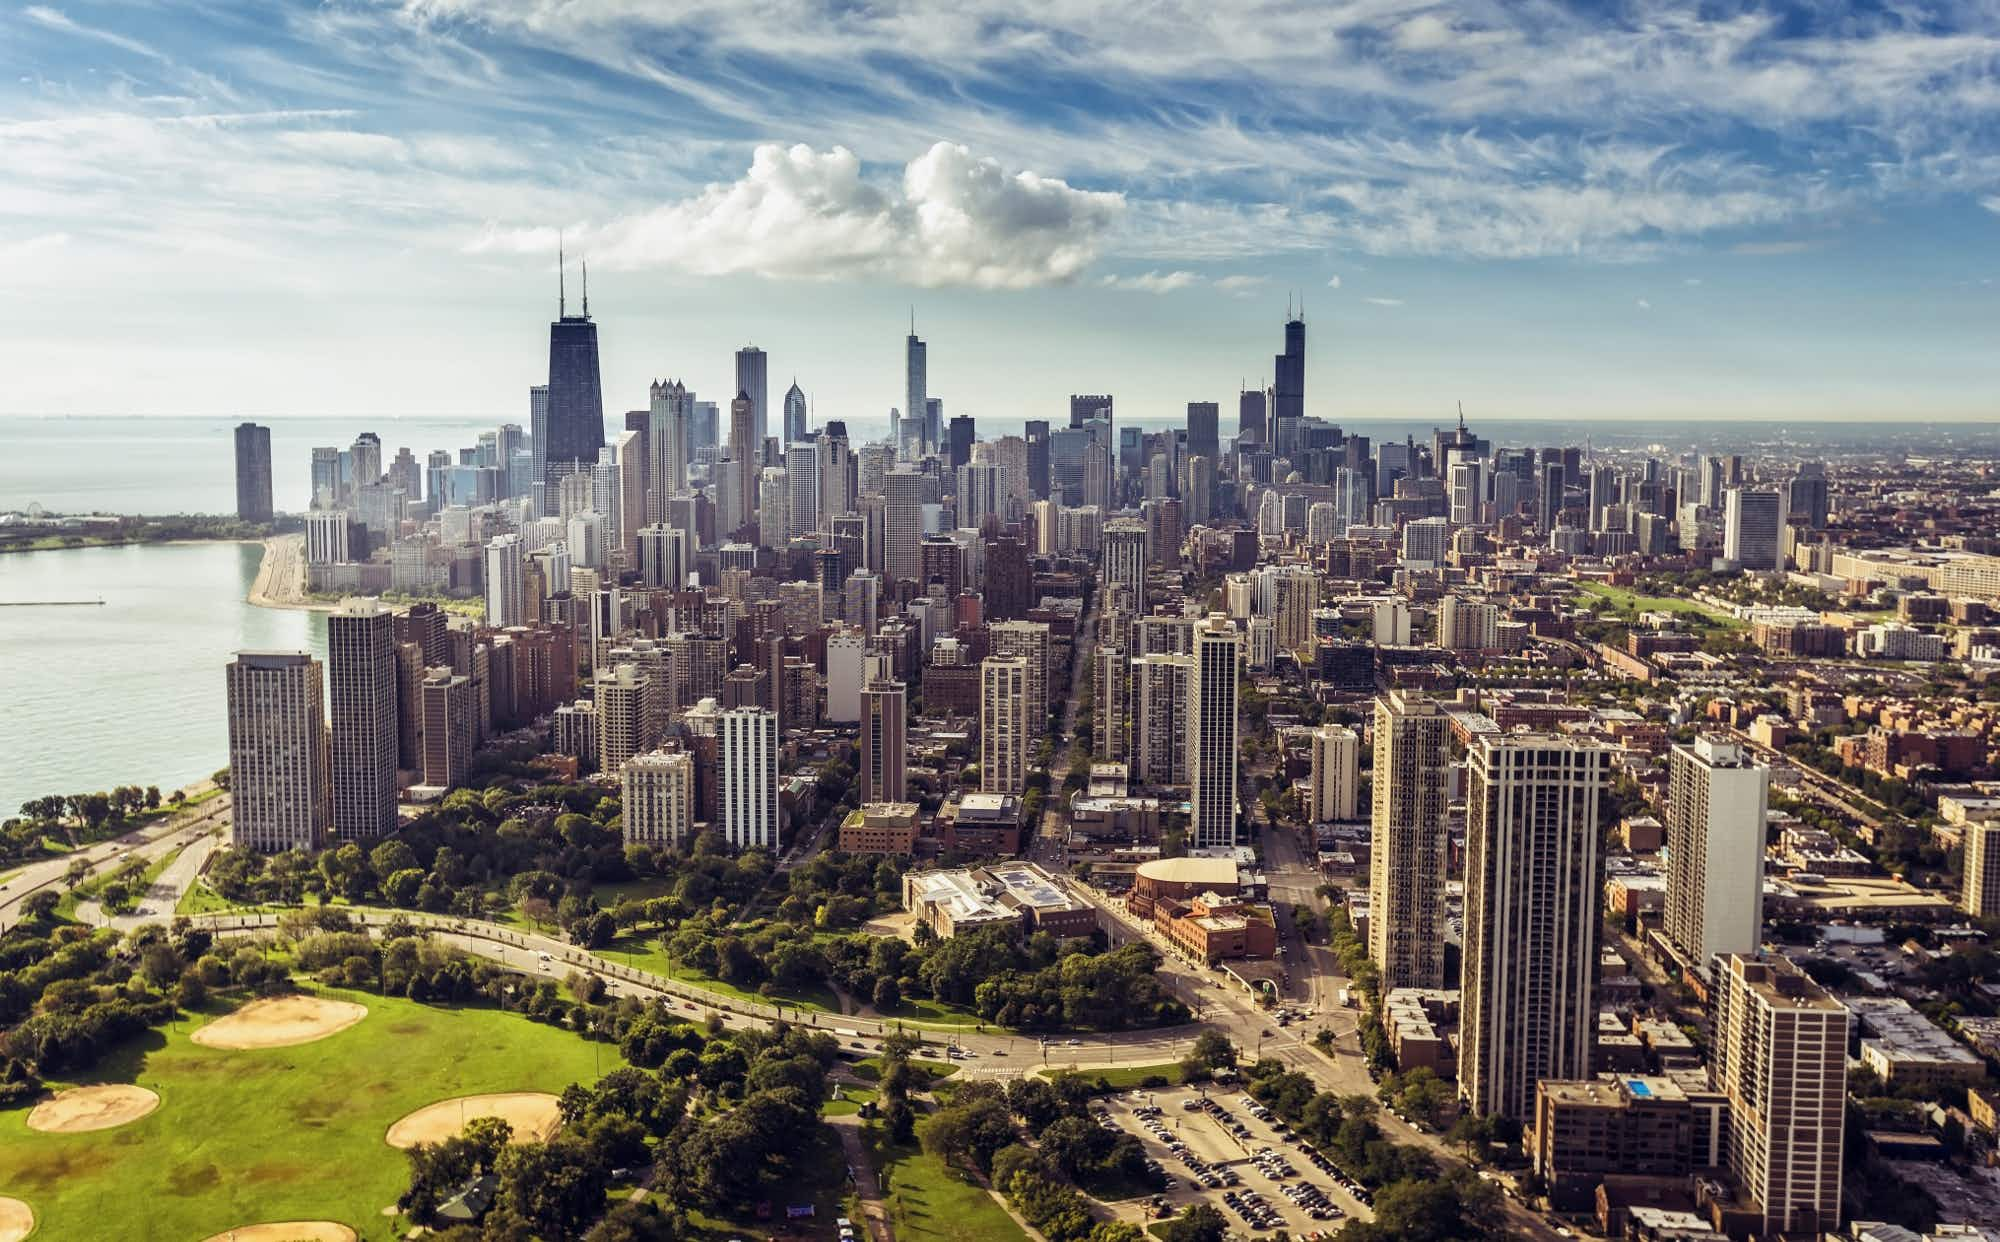 Chicago revealed as the world's number one city for having fun and enjoying life